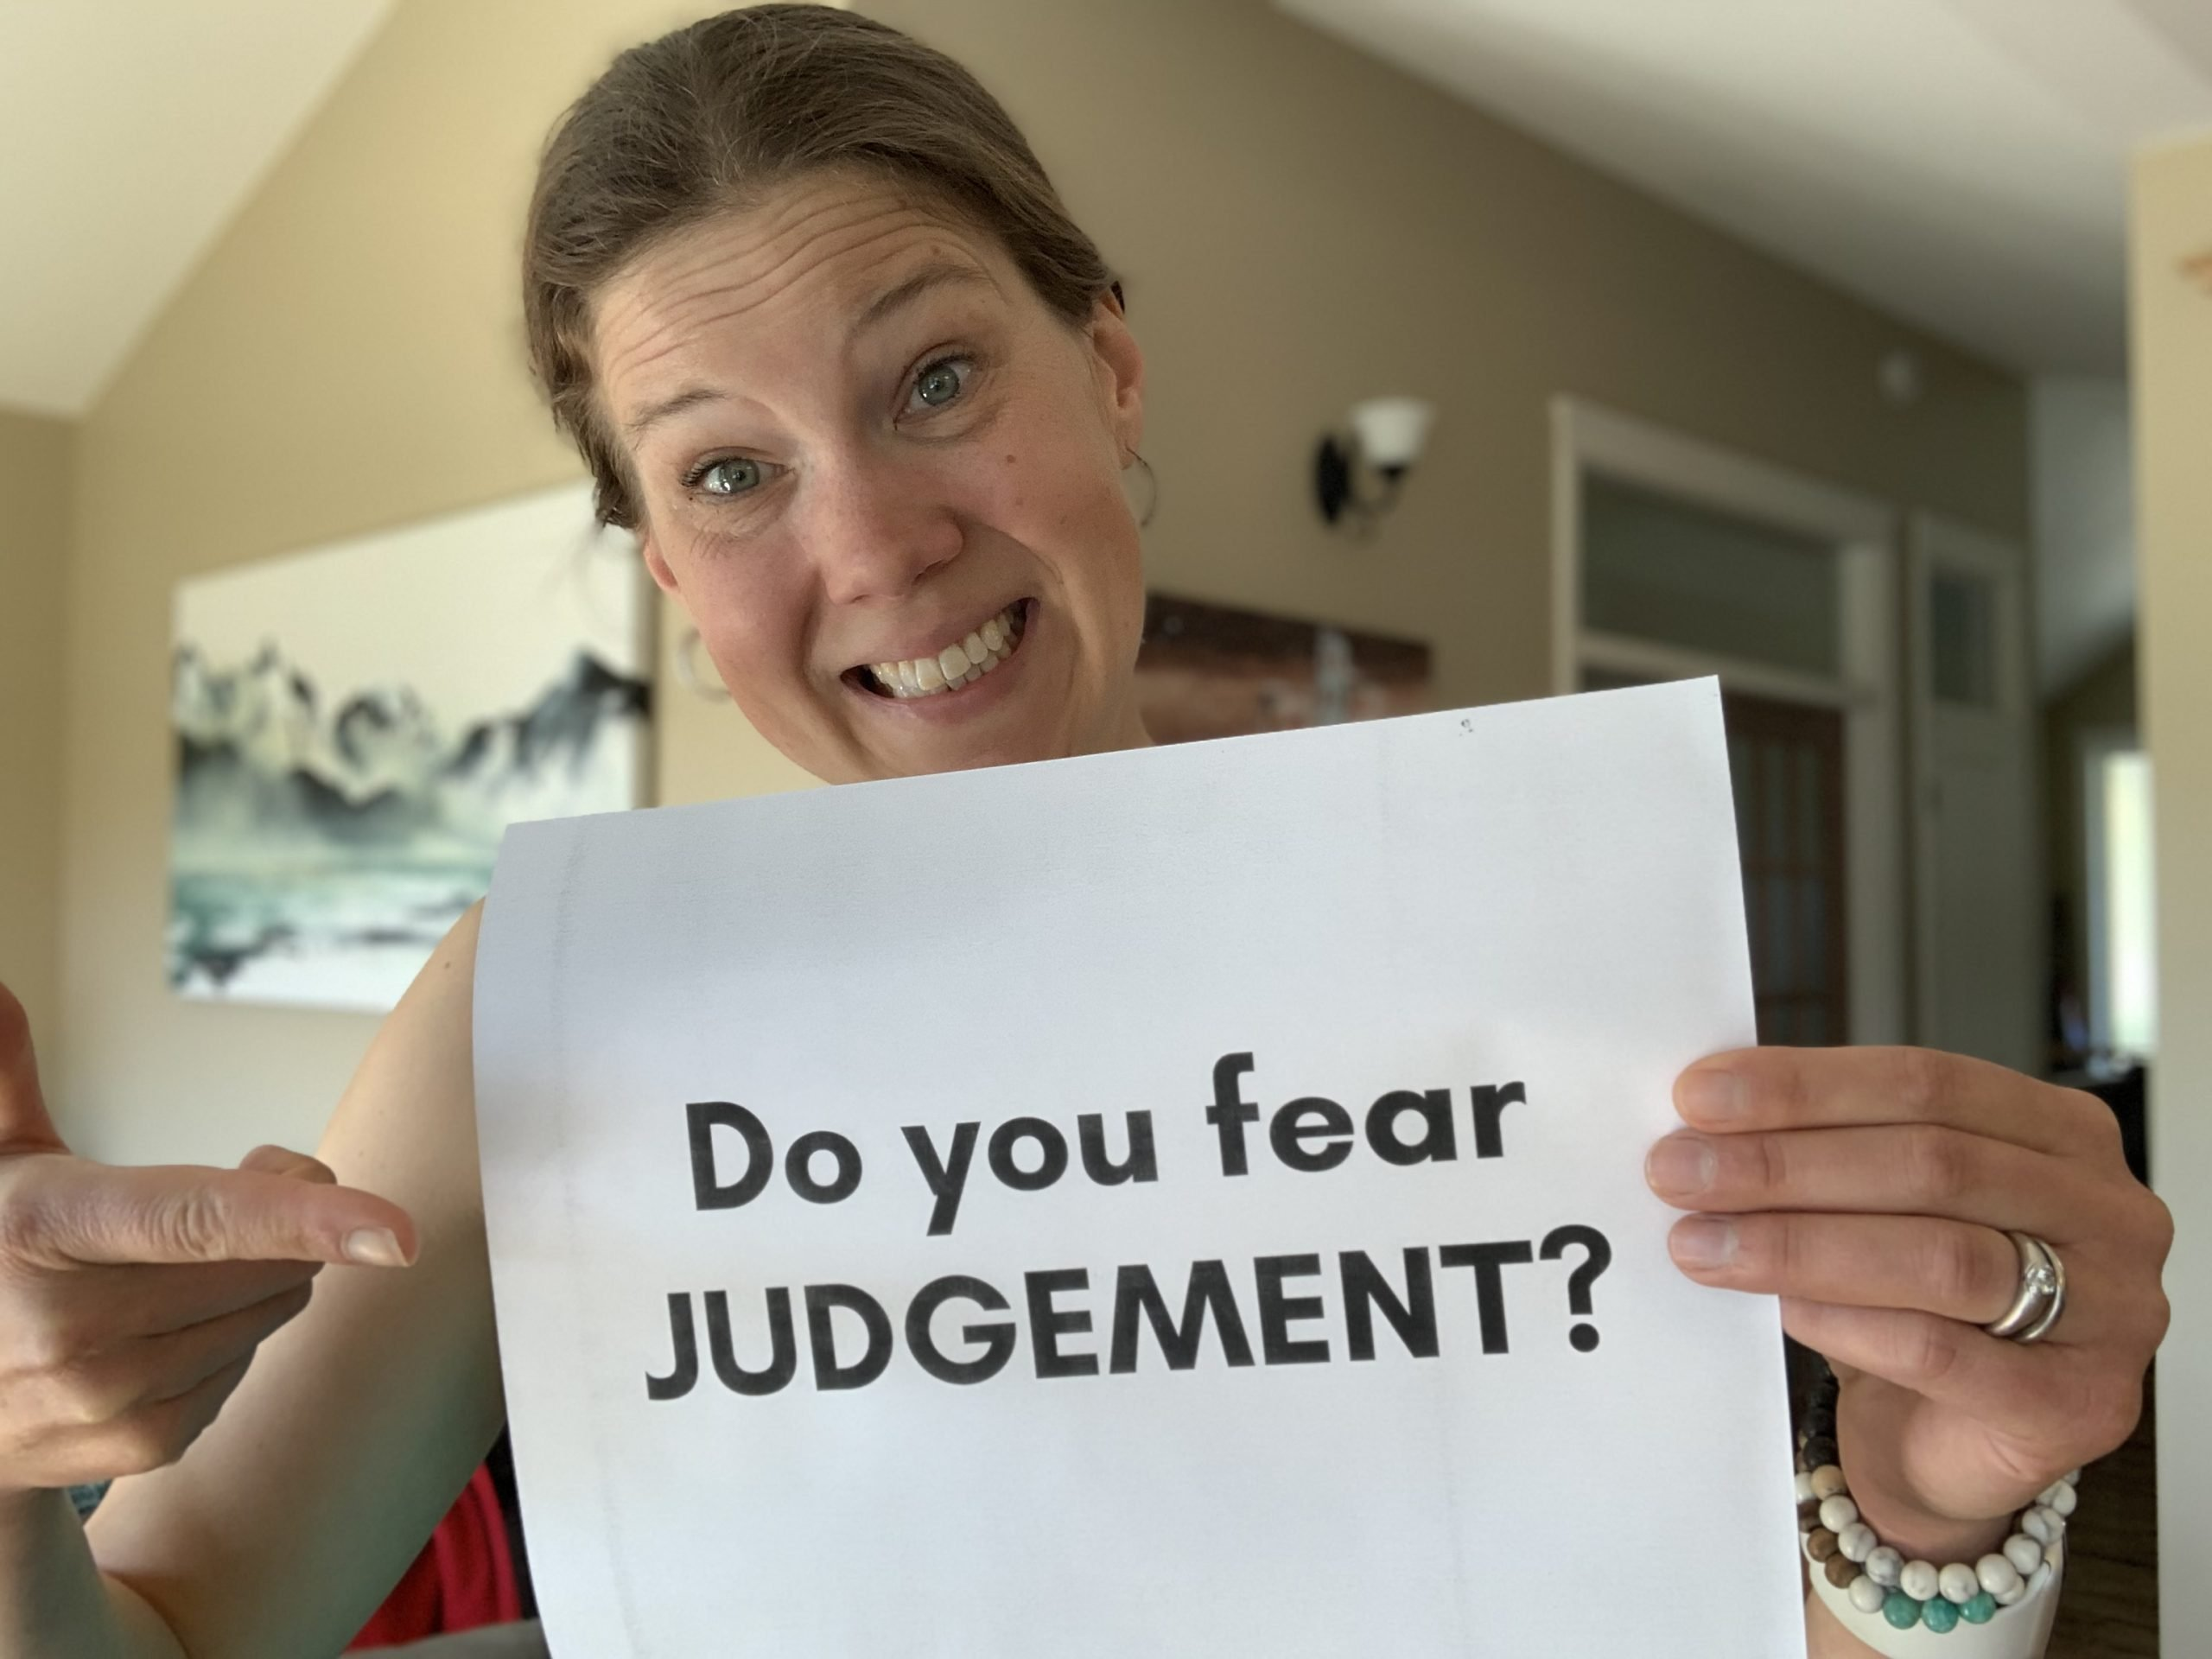 Is Your Fear of Judgement Keeping You Stuck? (FVY 182)